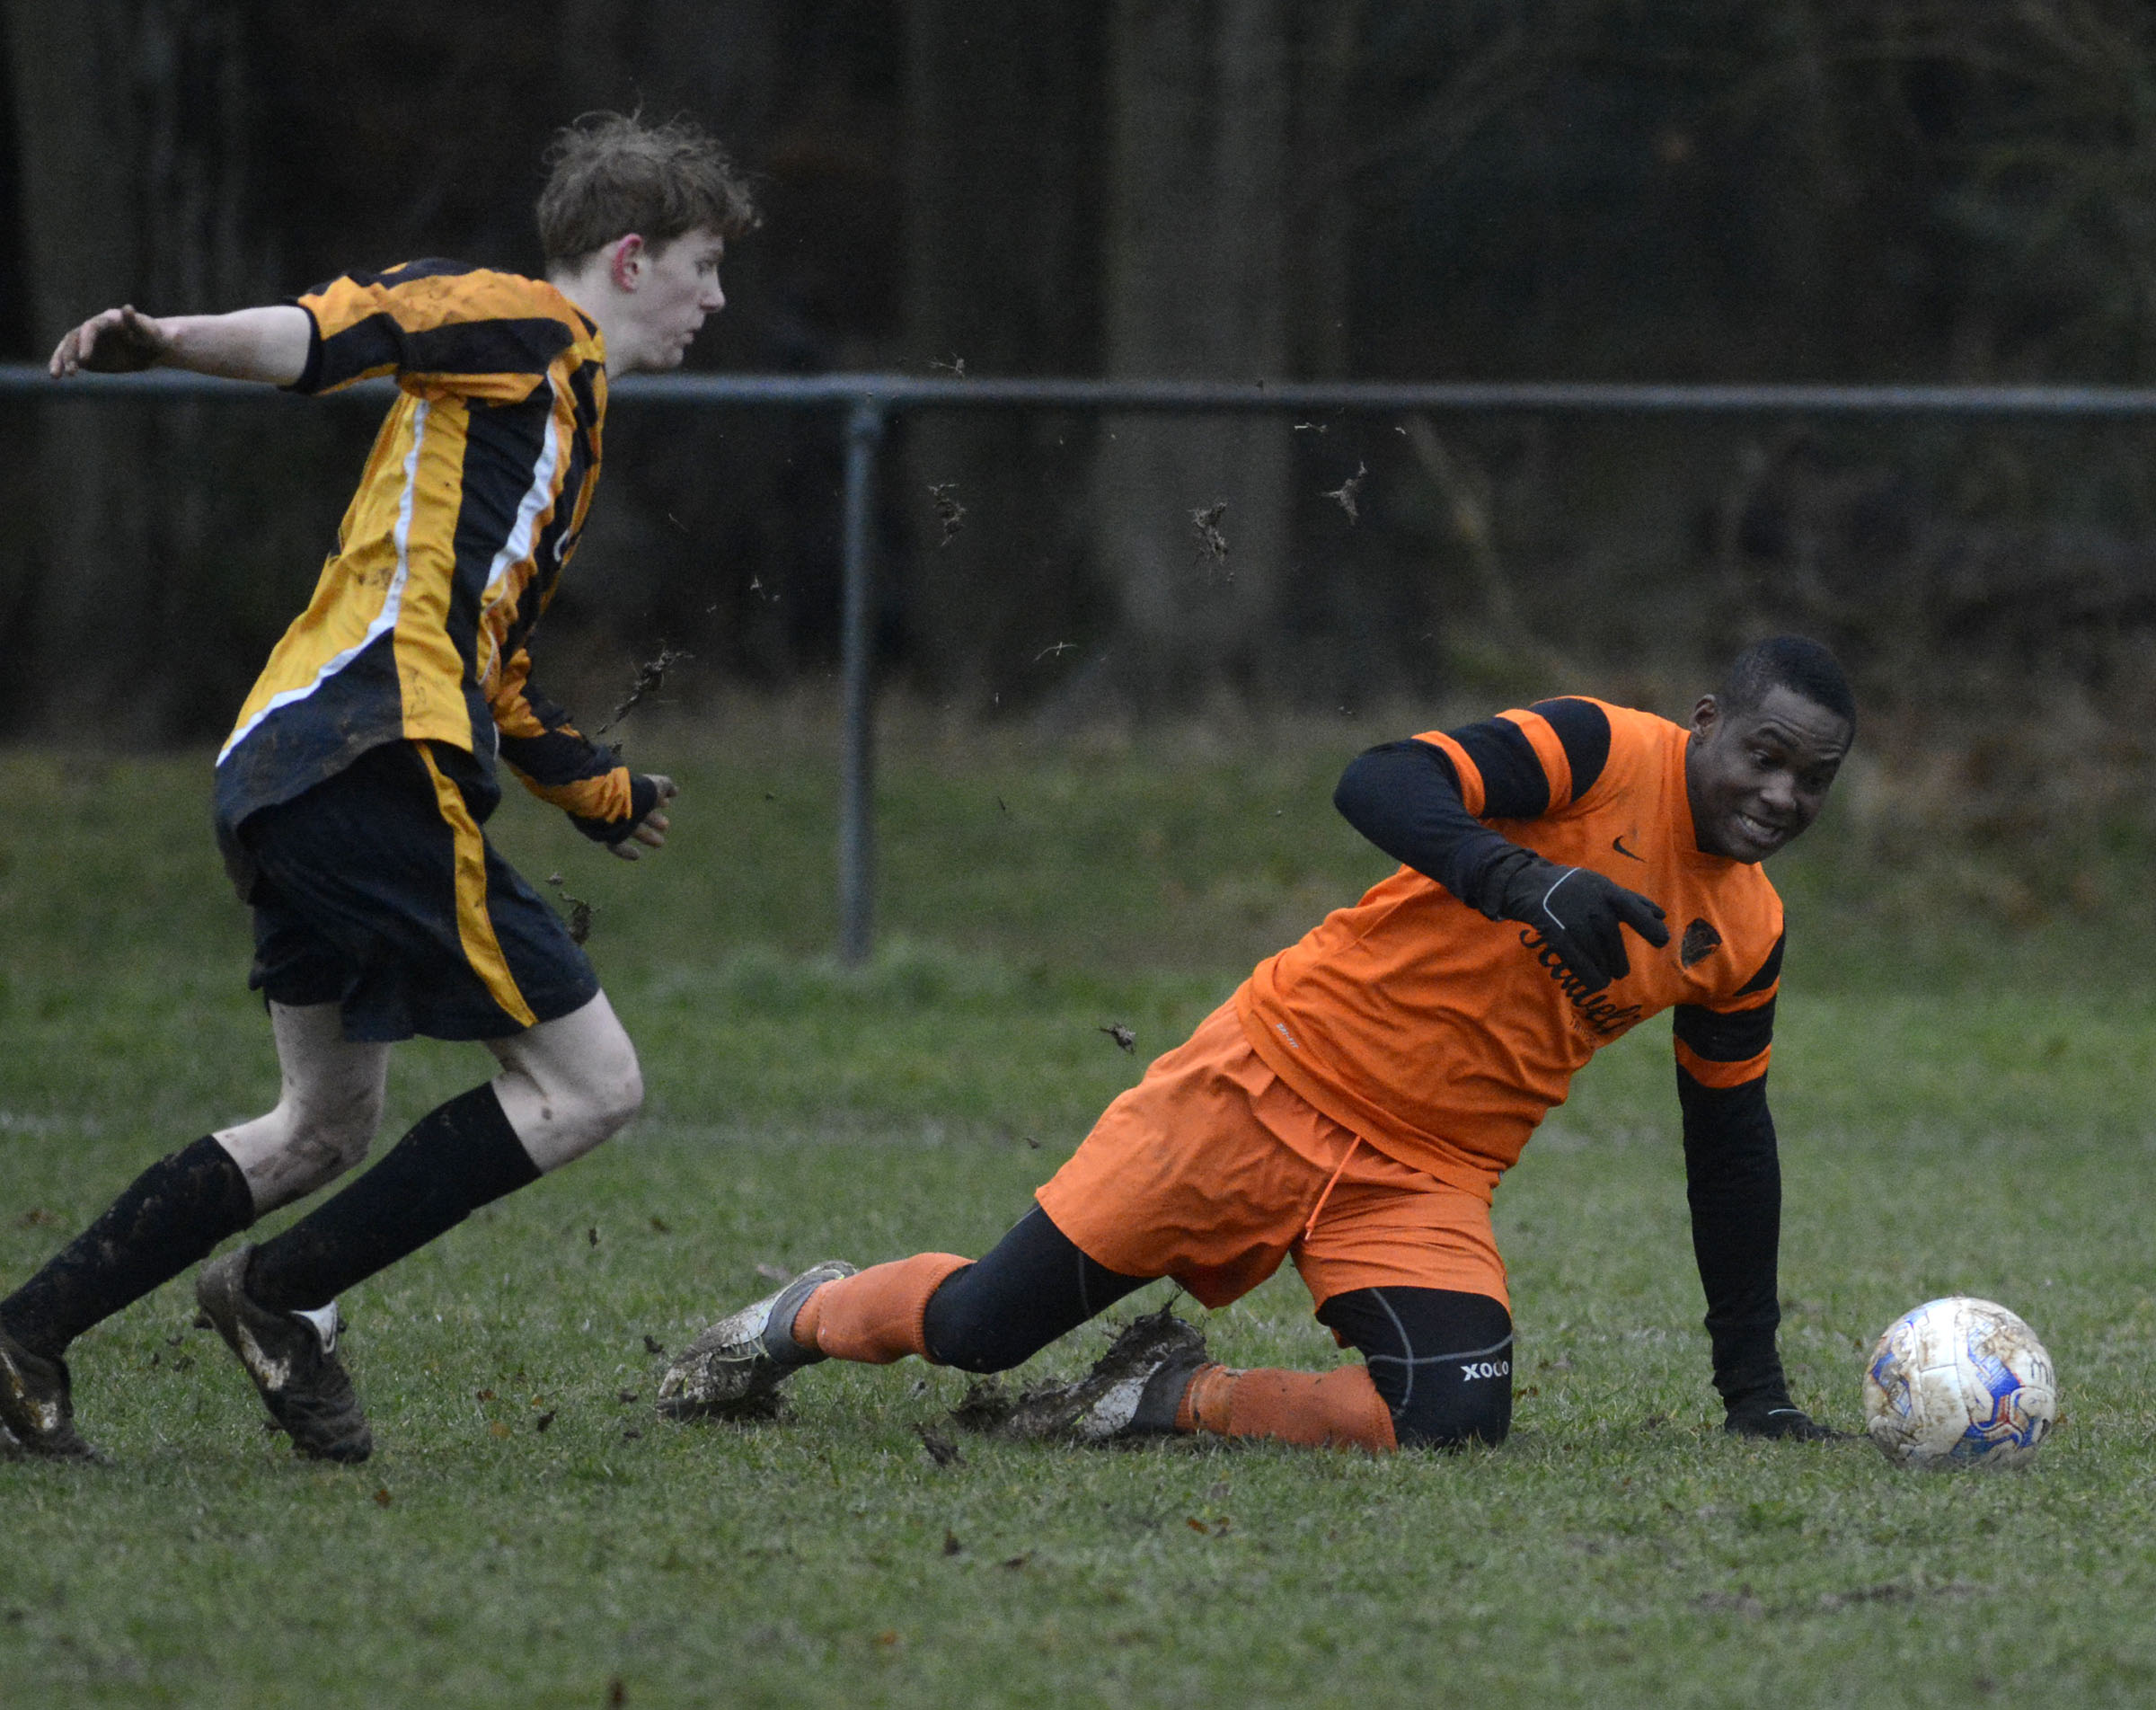 Rotherfield United (yellow/black) beat Hurst 5-1